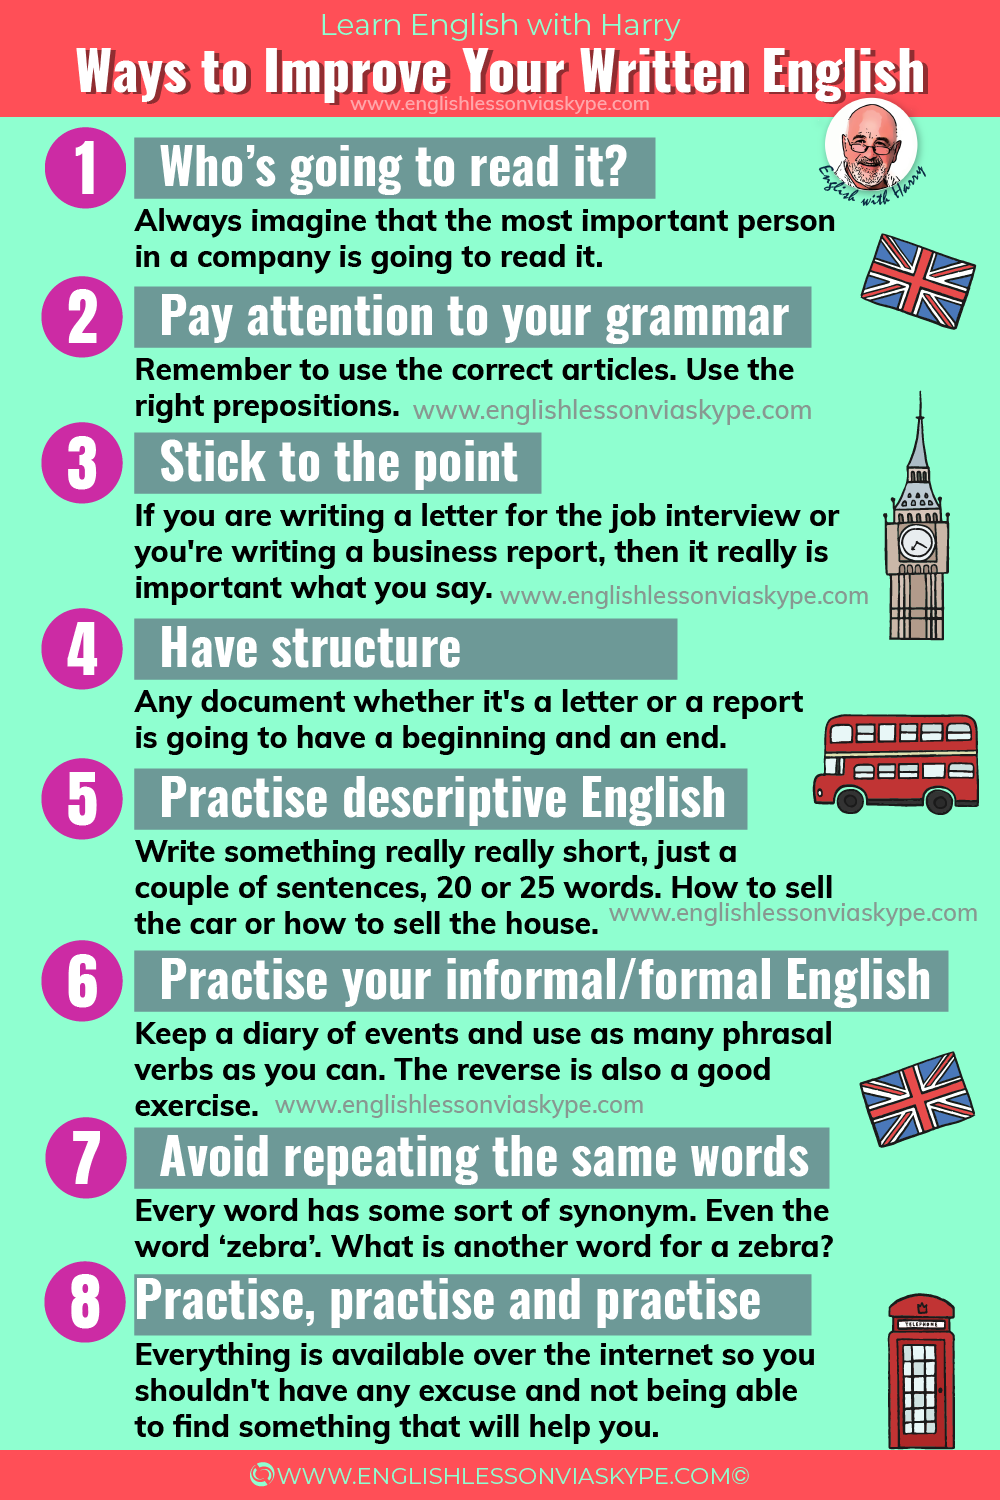 Helpful tips to improve your written English. Advanced English learning at www.englishlessonviaskype.com #learnenglish #englishlessons #EnglishTeacher #vocabulary #ingles #อังกฤษ #английский #aprenderingles #english #cursodeingles #учианглийский #vocabulário #dicasdeingles #learningenglish #ingilizce #englishgrammar #englishvocabulary #ielts #idiomas